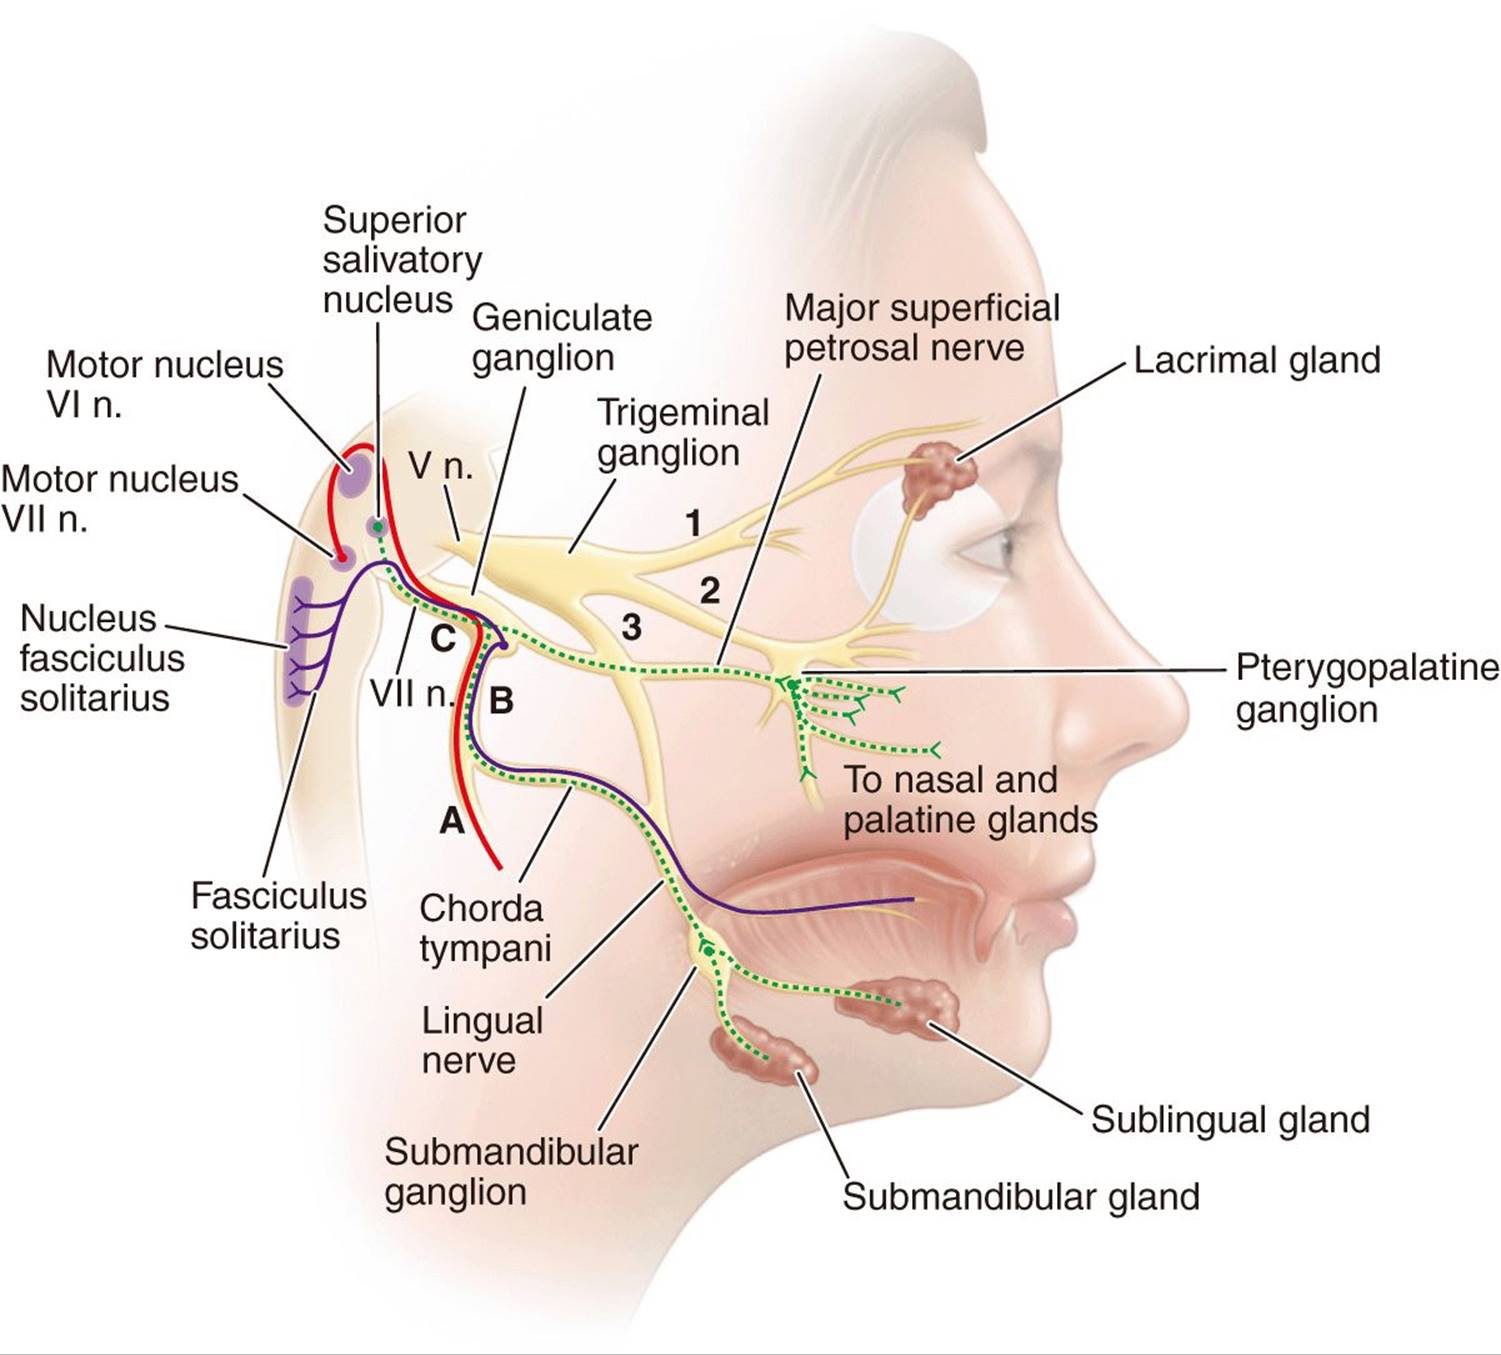 Trigeminal Neuralgia Bell S Palsy And Other Cranial Nerve Disorders Diseases Of The Nervous System Harrison S Neurology In Clinical Medicine 3rd Edition (stylomastoid foramen is third label from the bottom on the left.) trigeminal neuralgia bell s palsy and